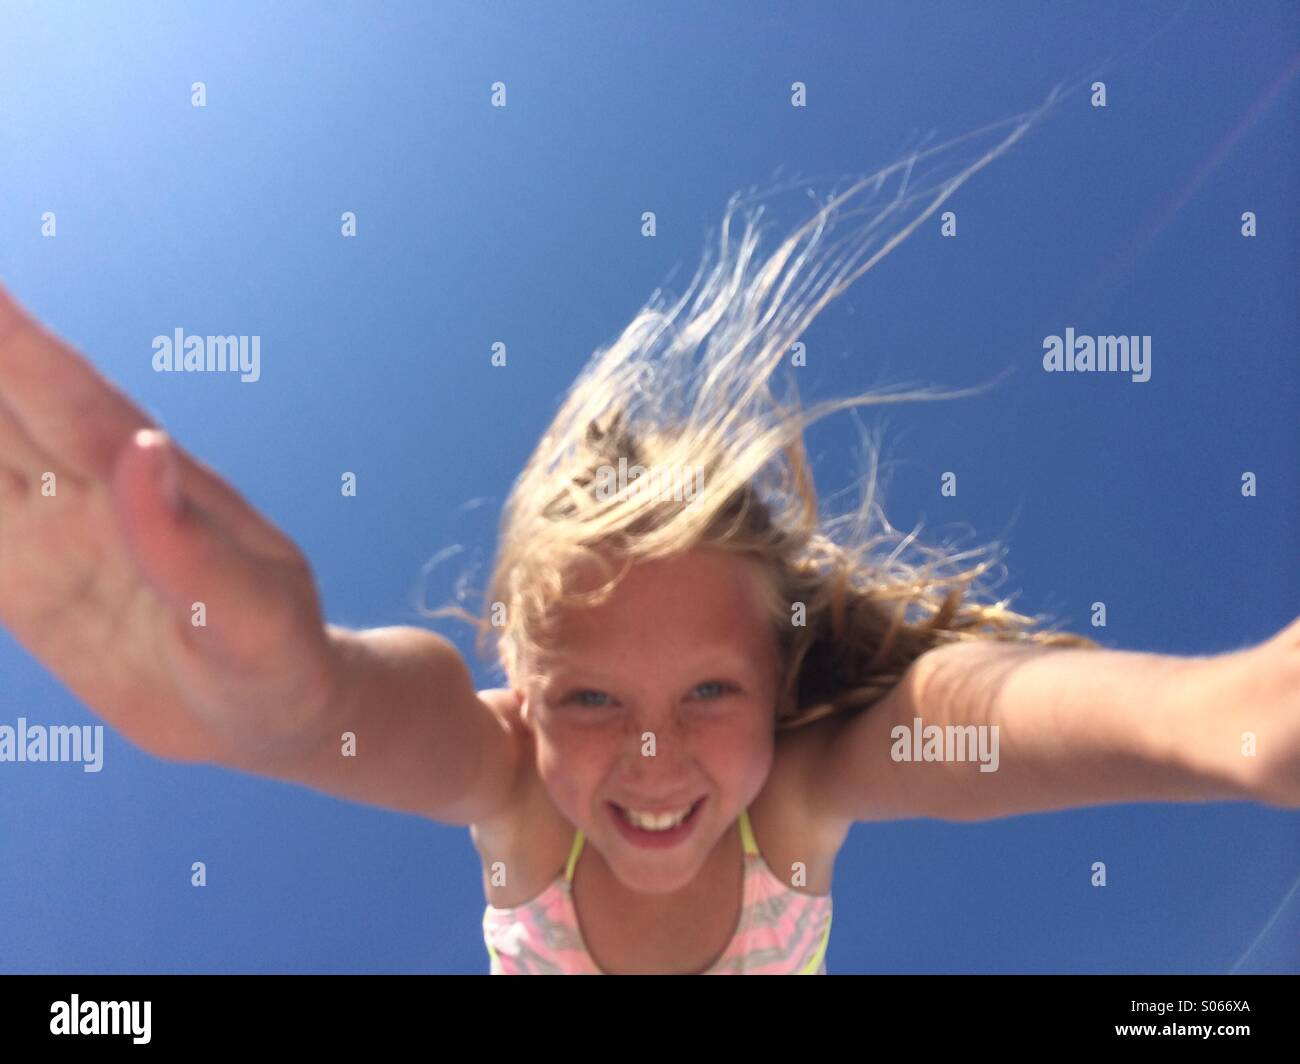 Girl in the air with the blue sky behind. - Stock Image